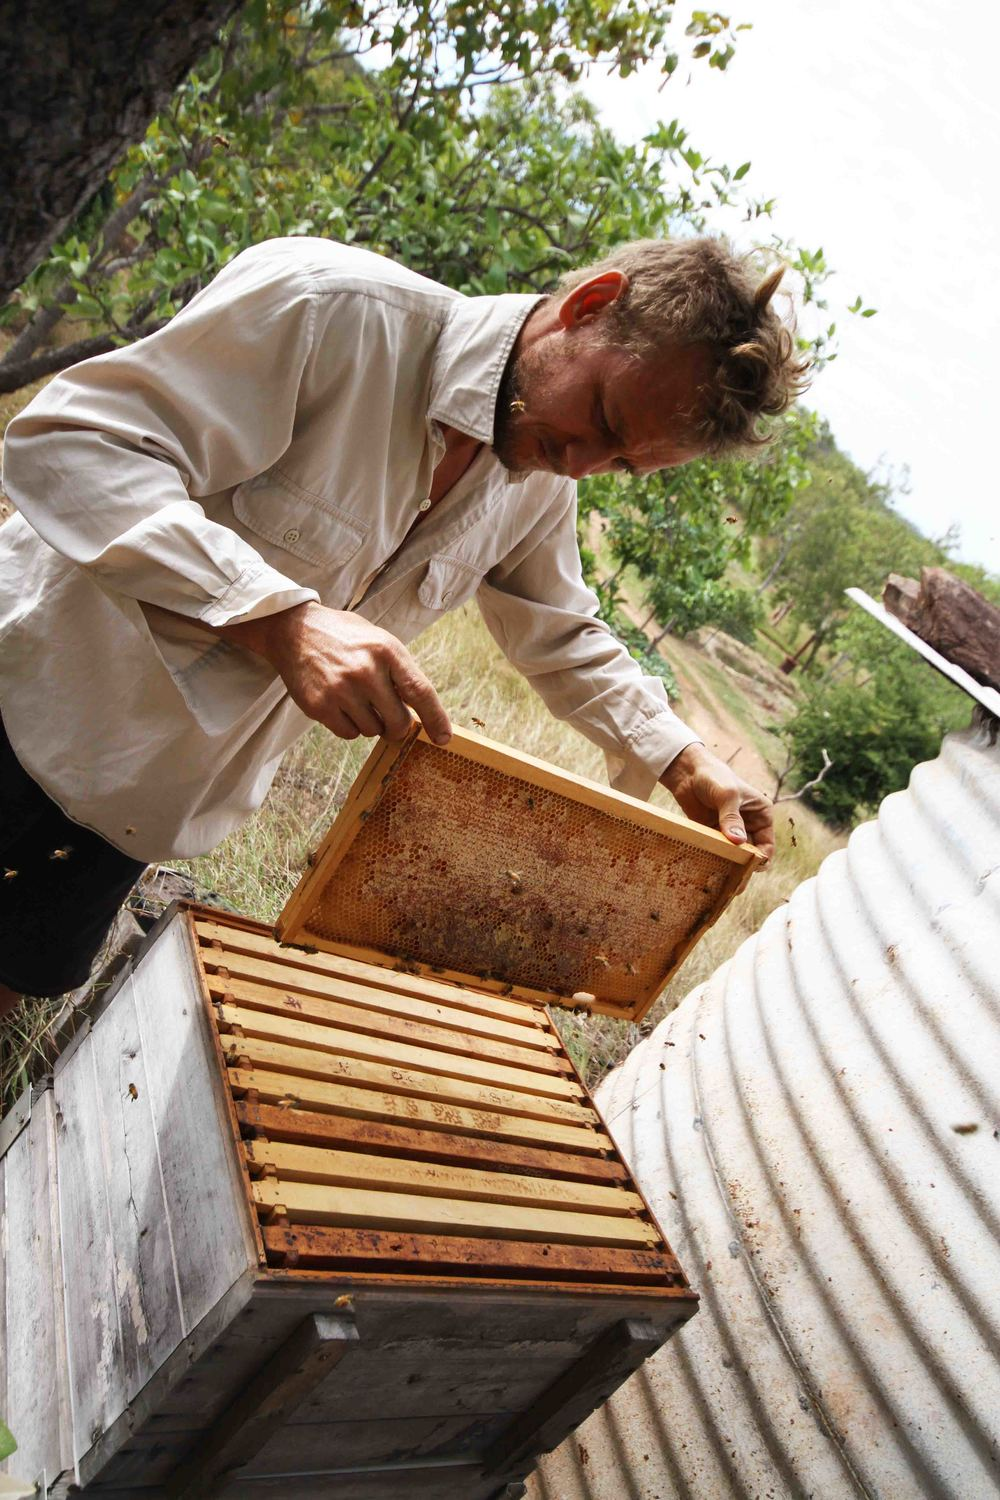 Luke collecting the honey